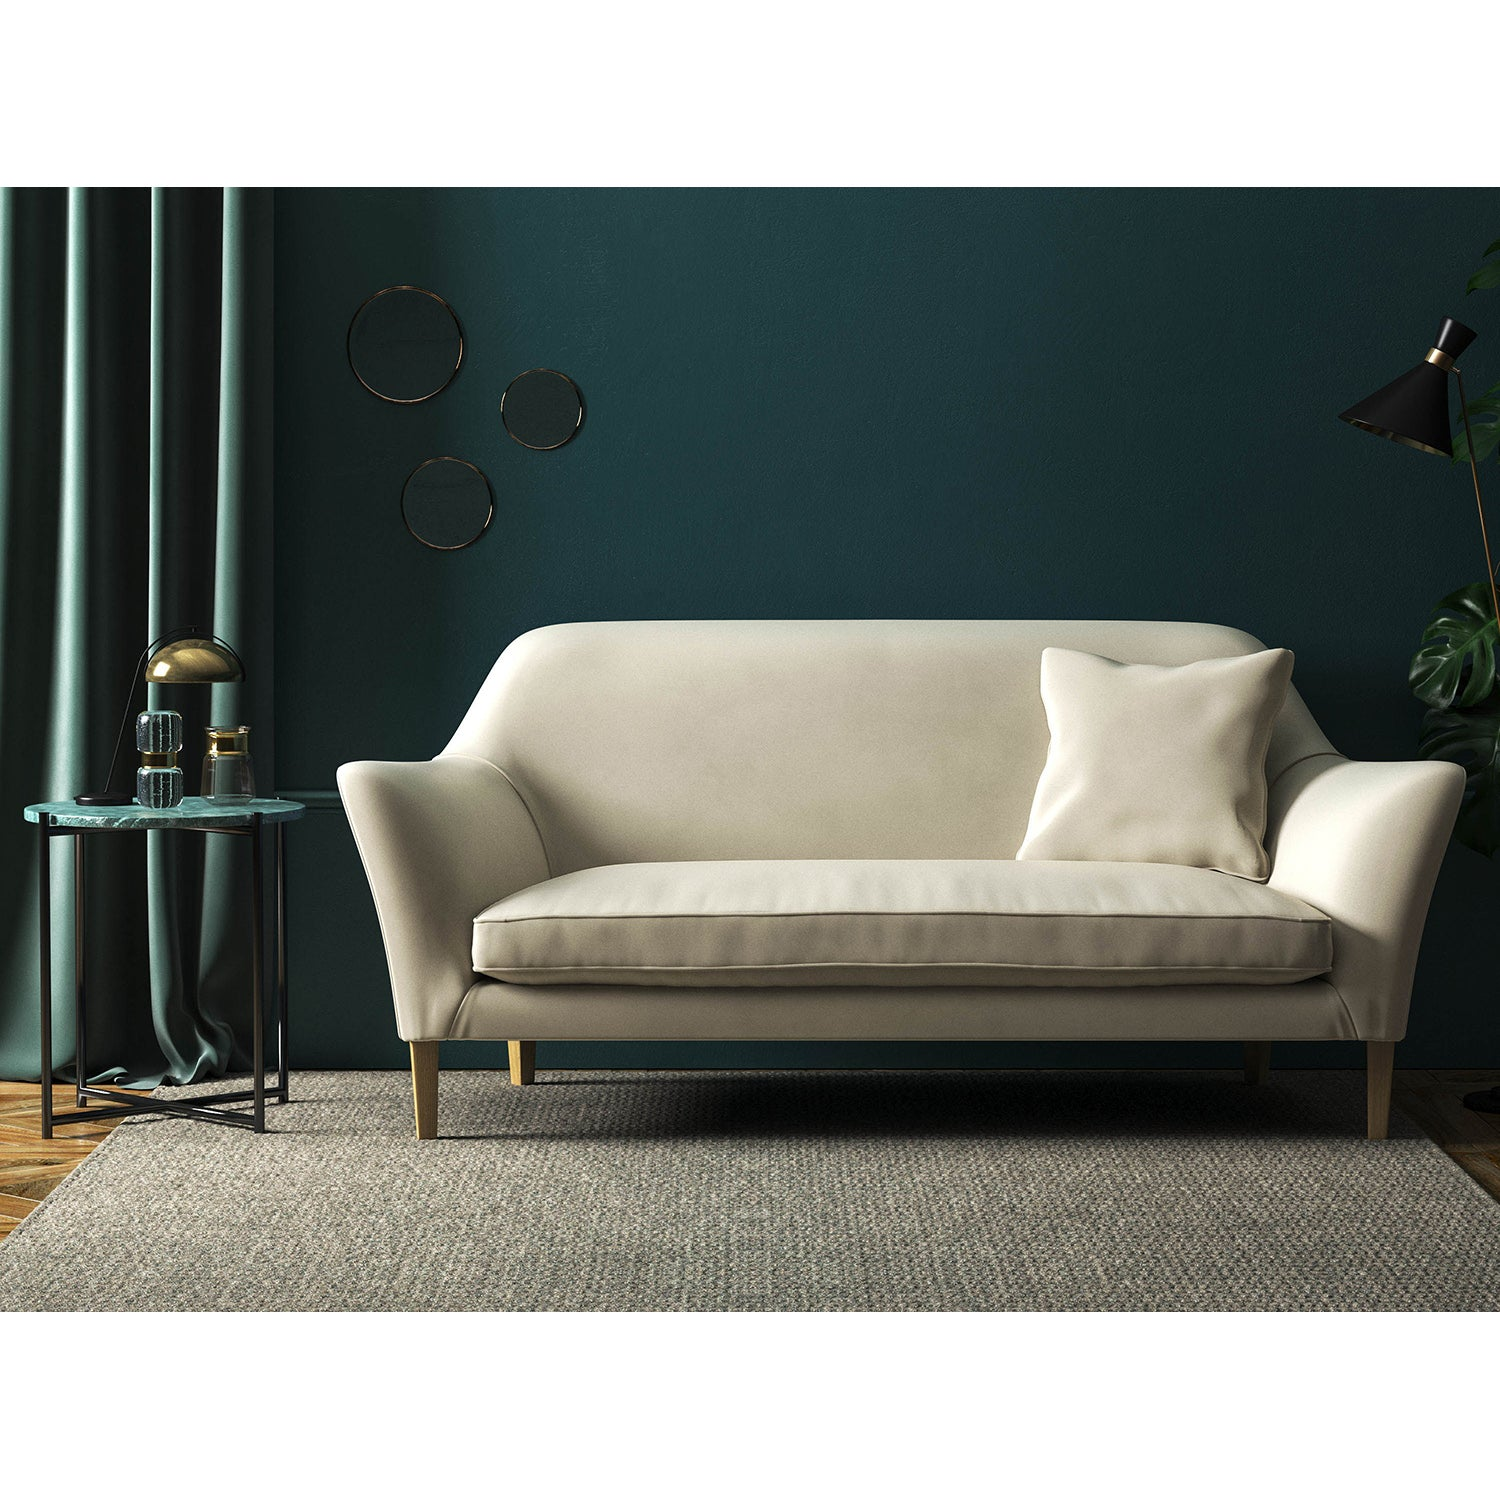 Sofa in a luxury winter-white velvet upholstery fabric with a stain resistant finish